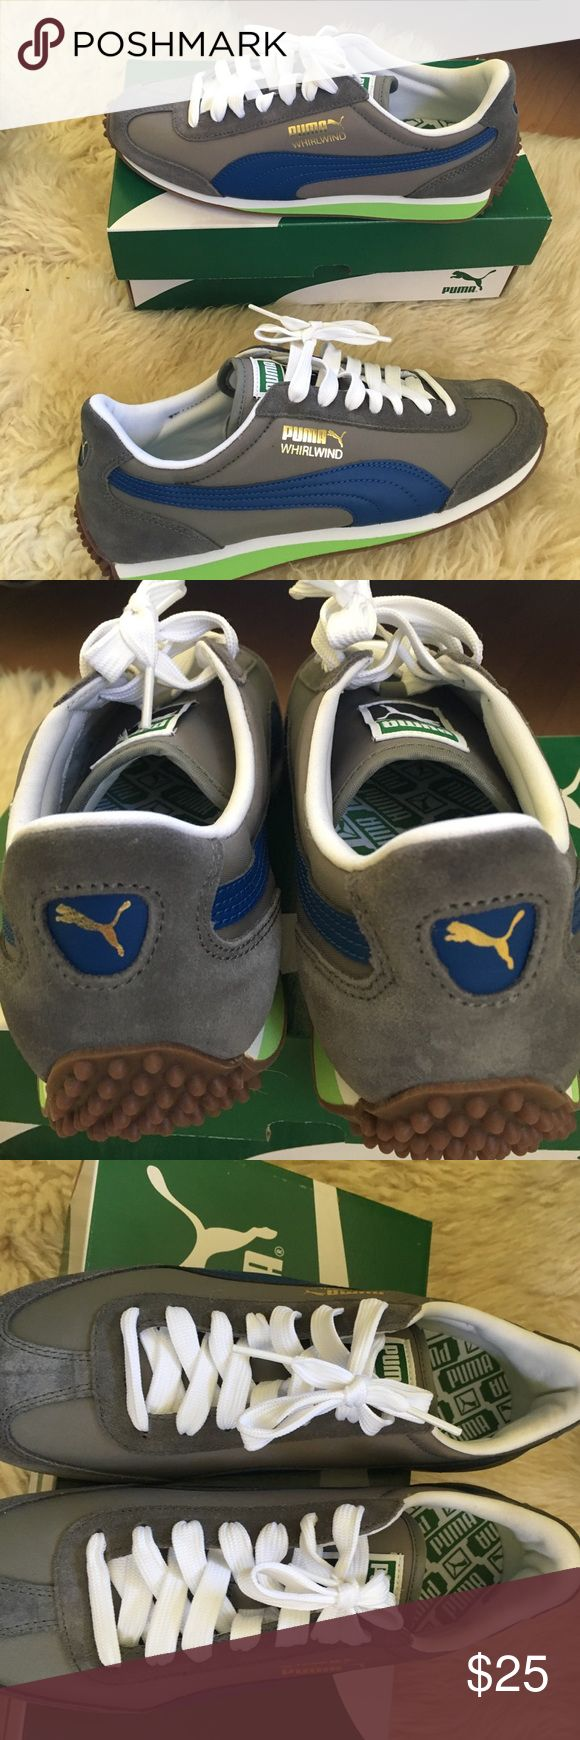 NWT with original box leather puma shoes for men New men's leather  shoes size 7. Too small for my son Puma Shoes Sneakers